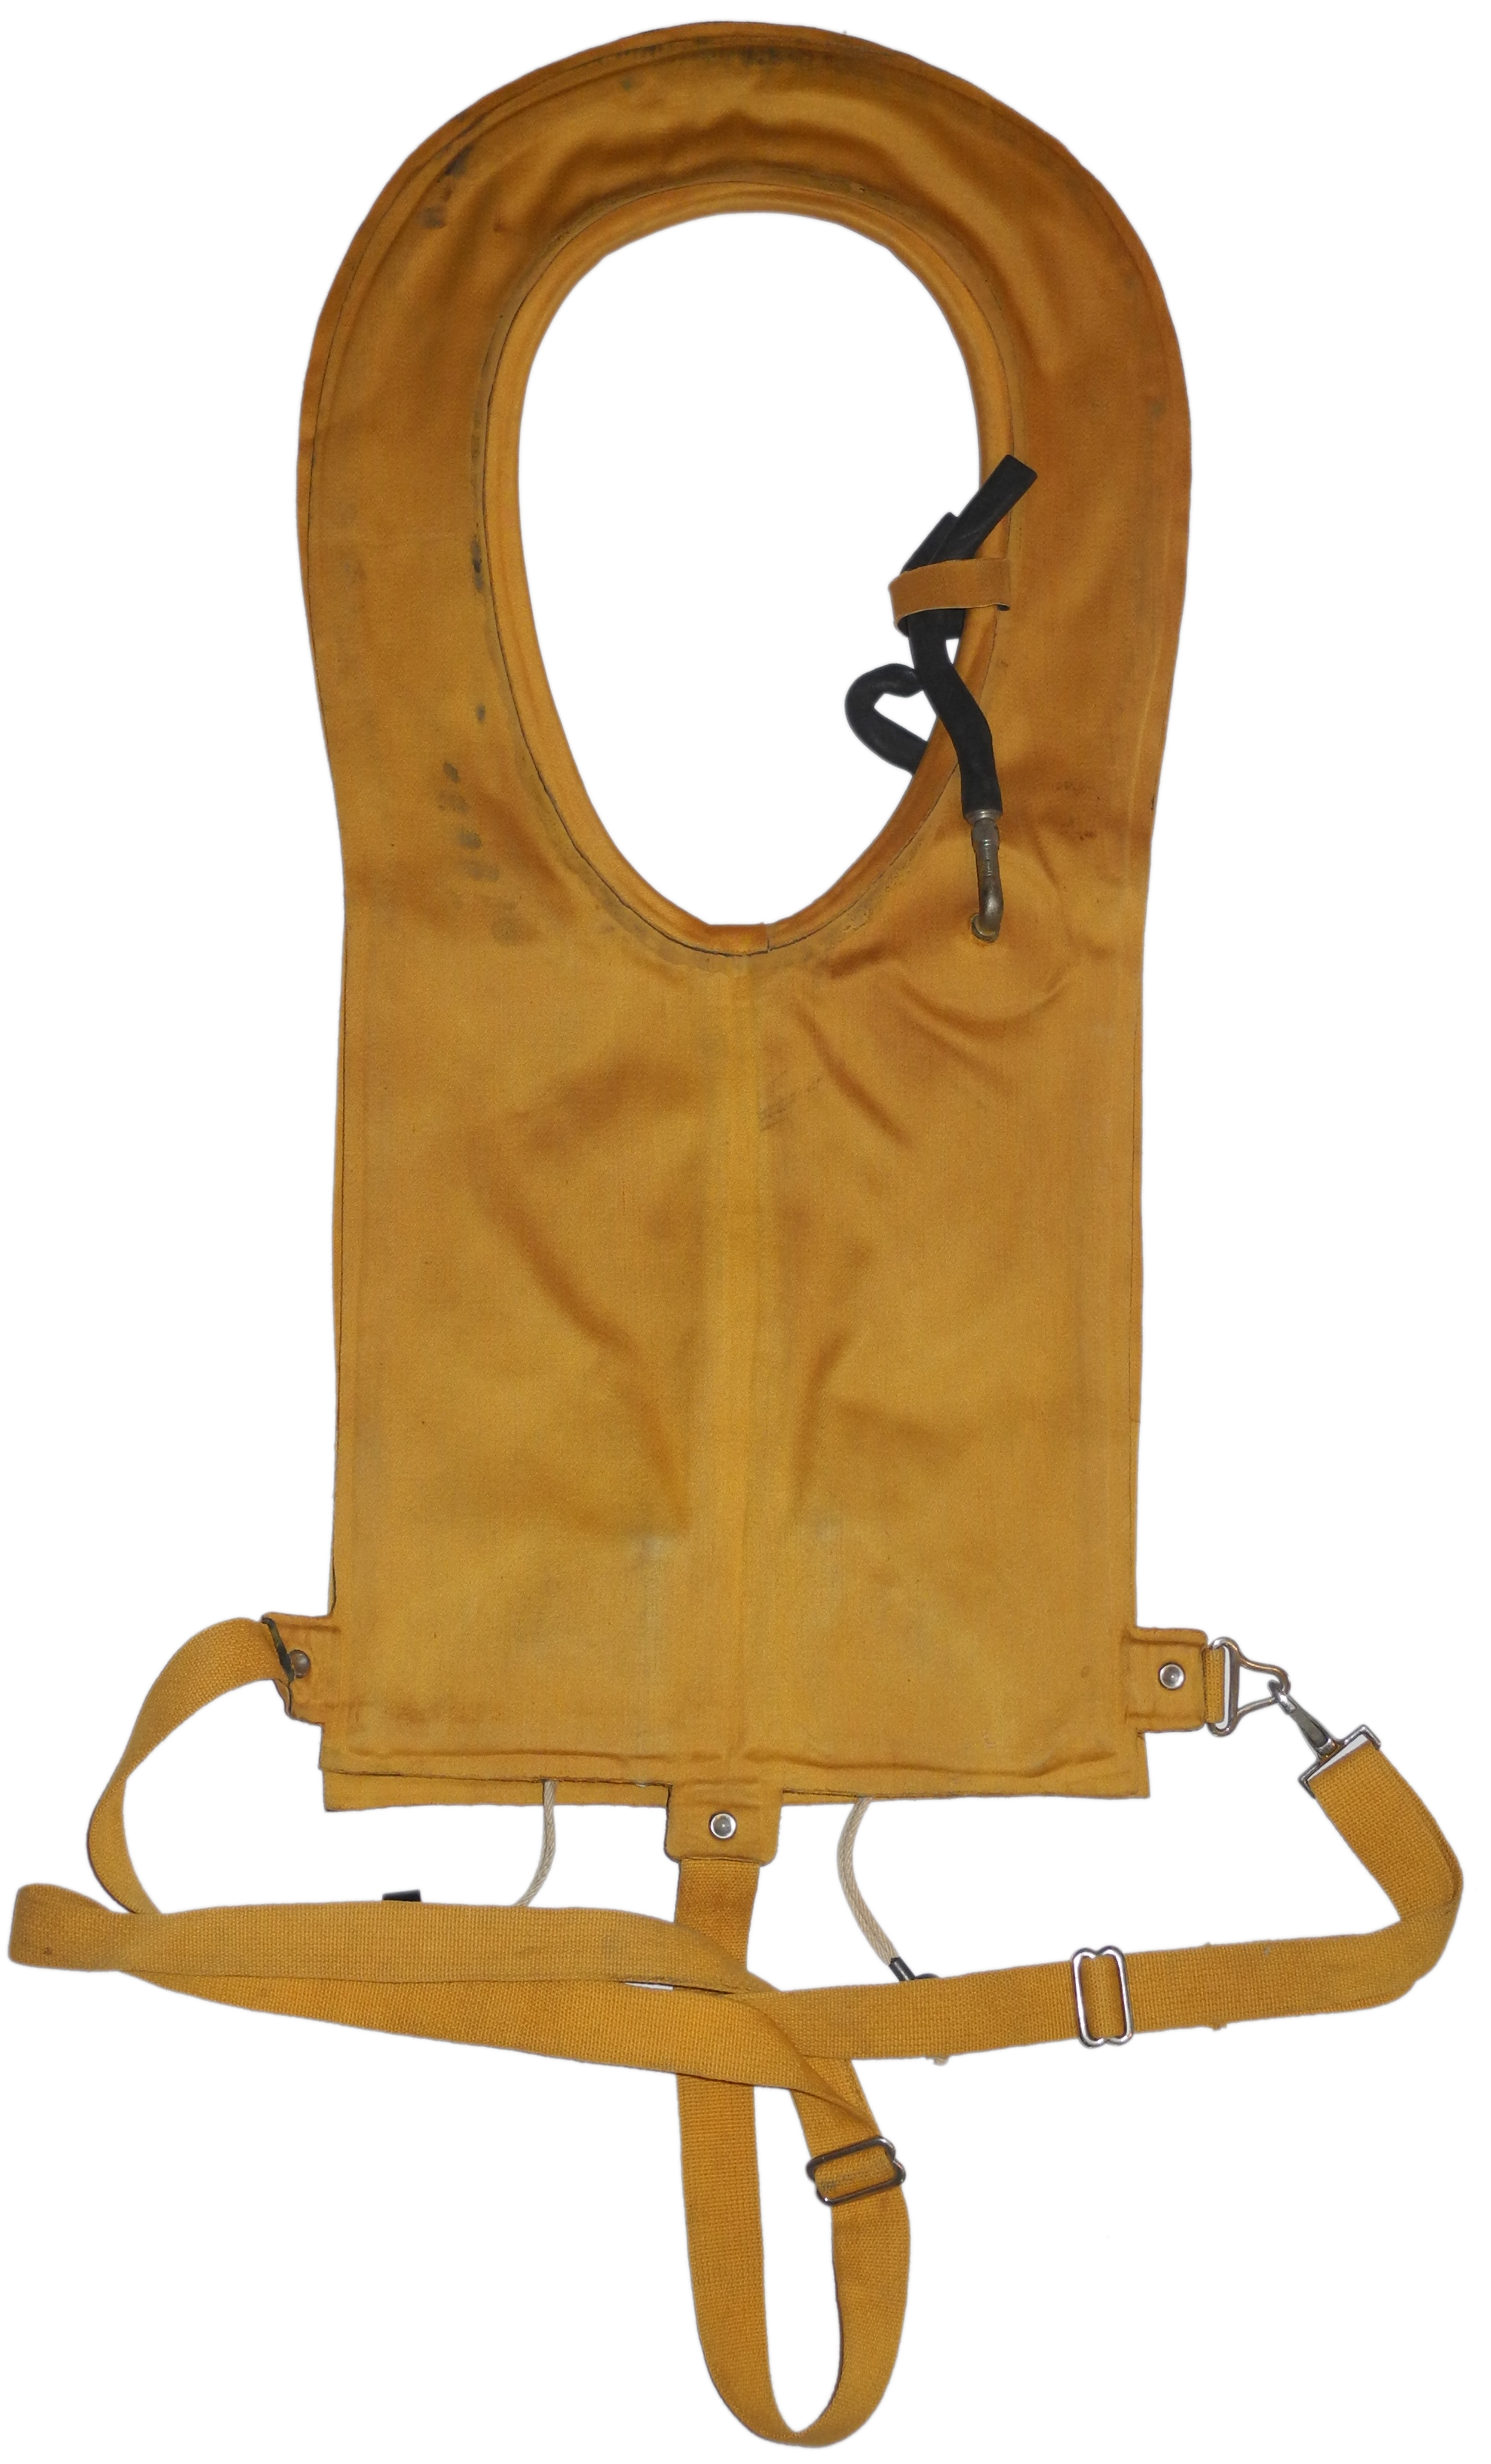 AAF B-4 life vest EARLY productionN6185